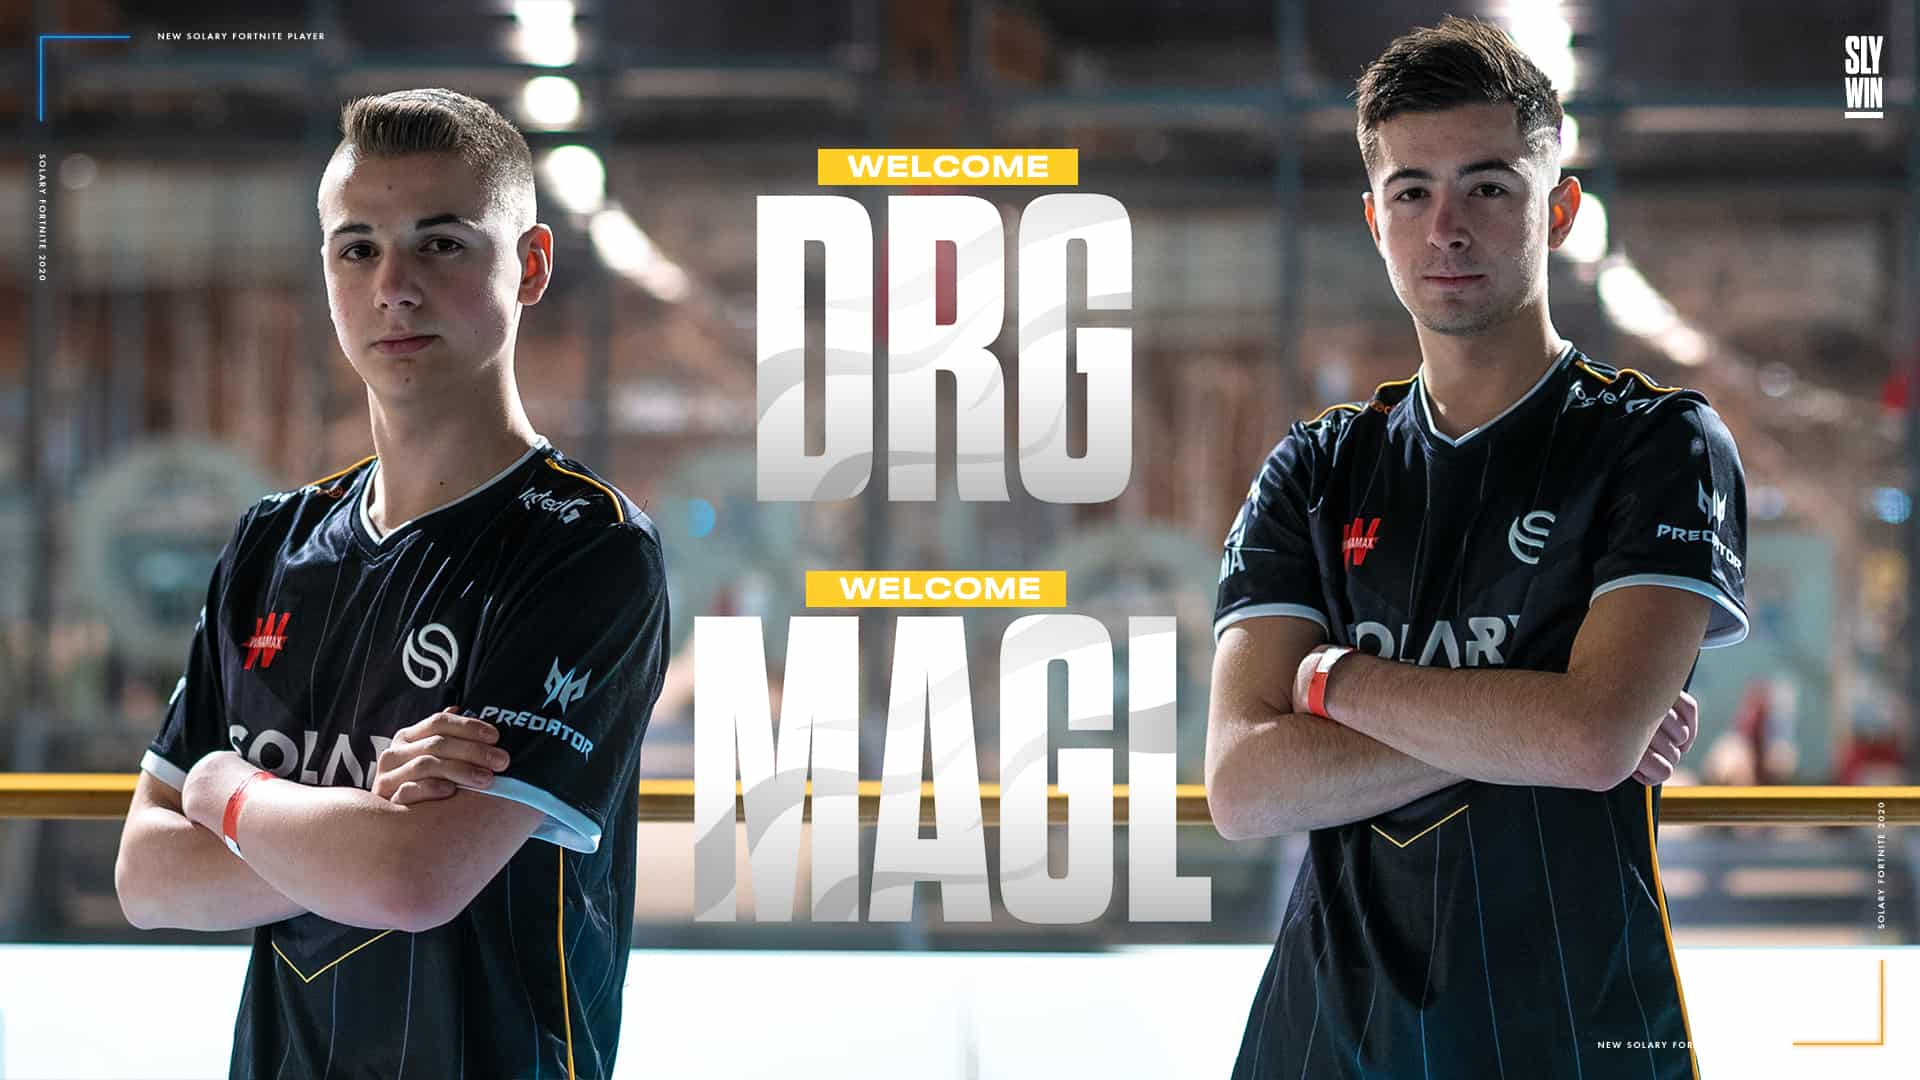 DRG et MAGL rejoignent Solary - pic annonce Twitter Solary